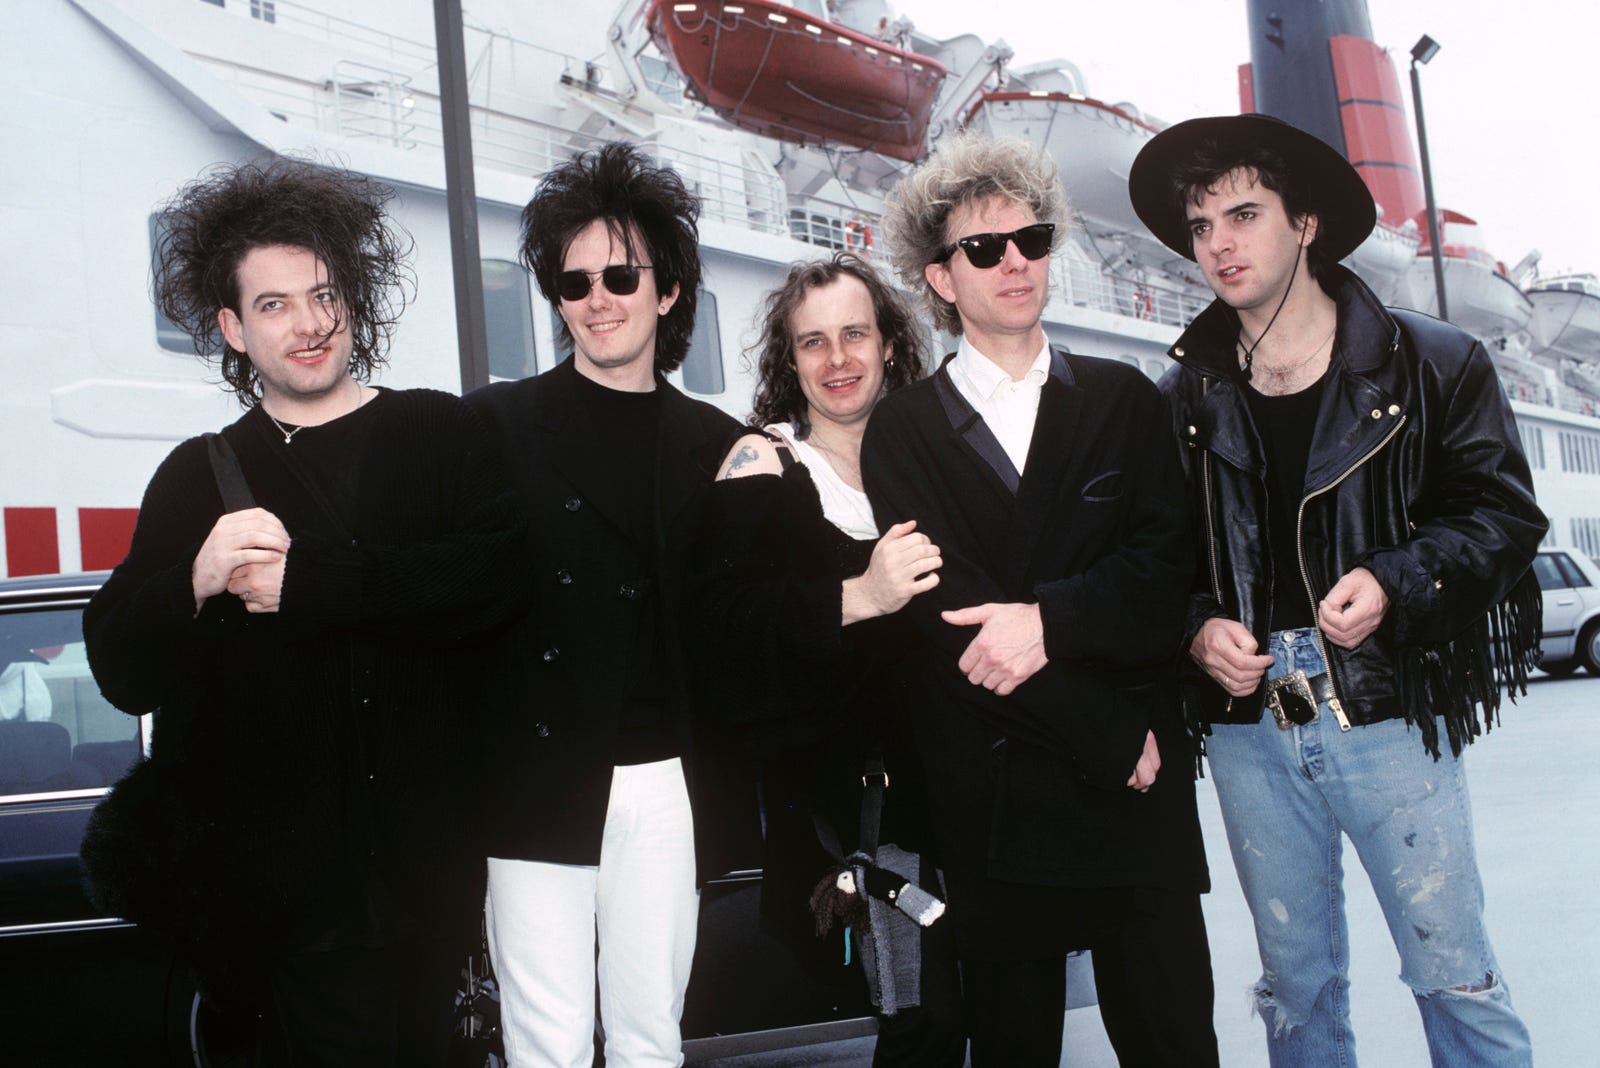 A beginner's guide to the music of The Cure